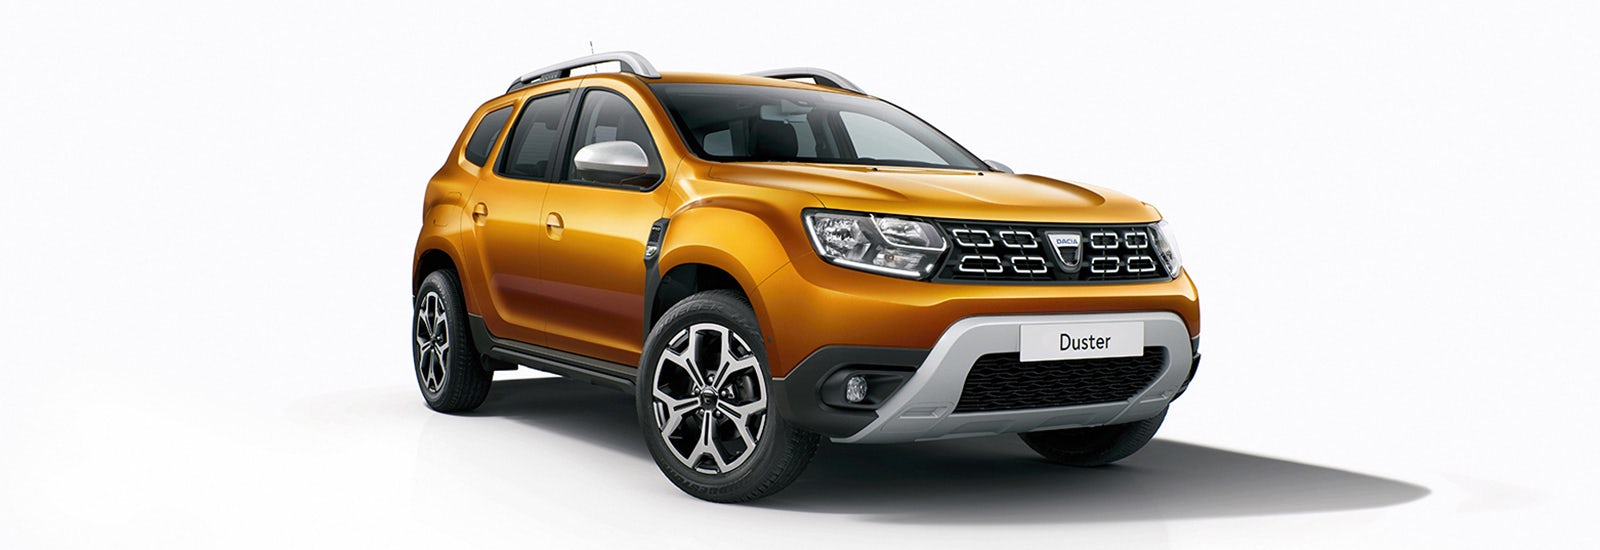 2018 dacia duster renault duster uk release date in autos post. Black Bedroom Furniture Sets. Home Design Ideas